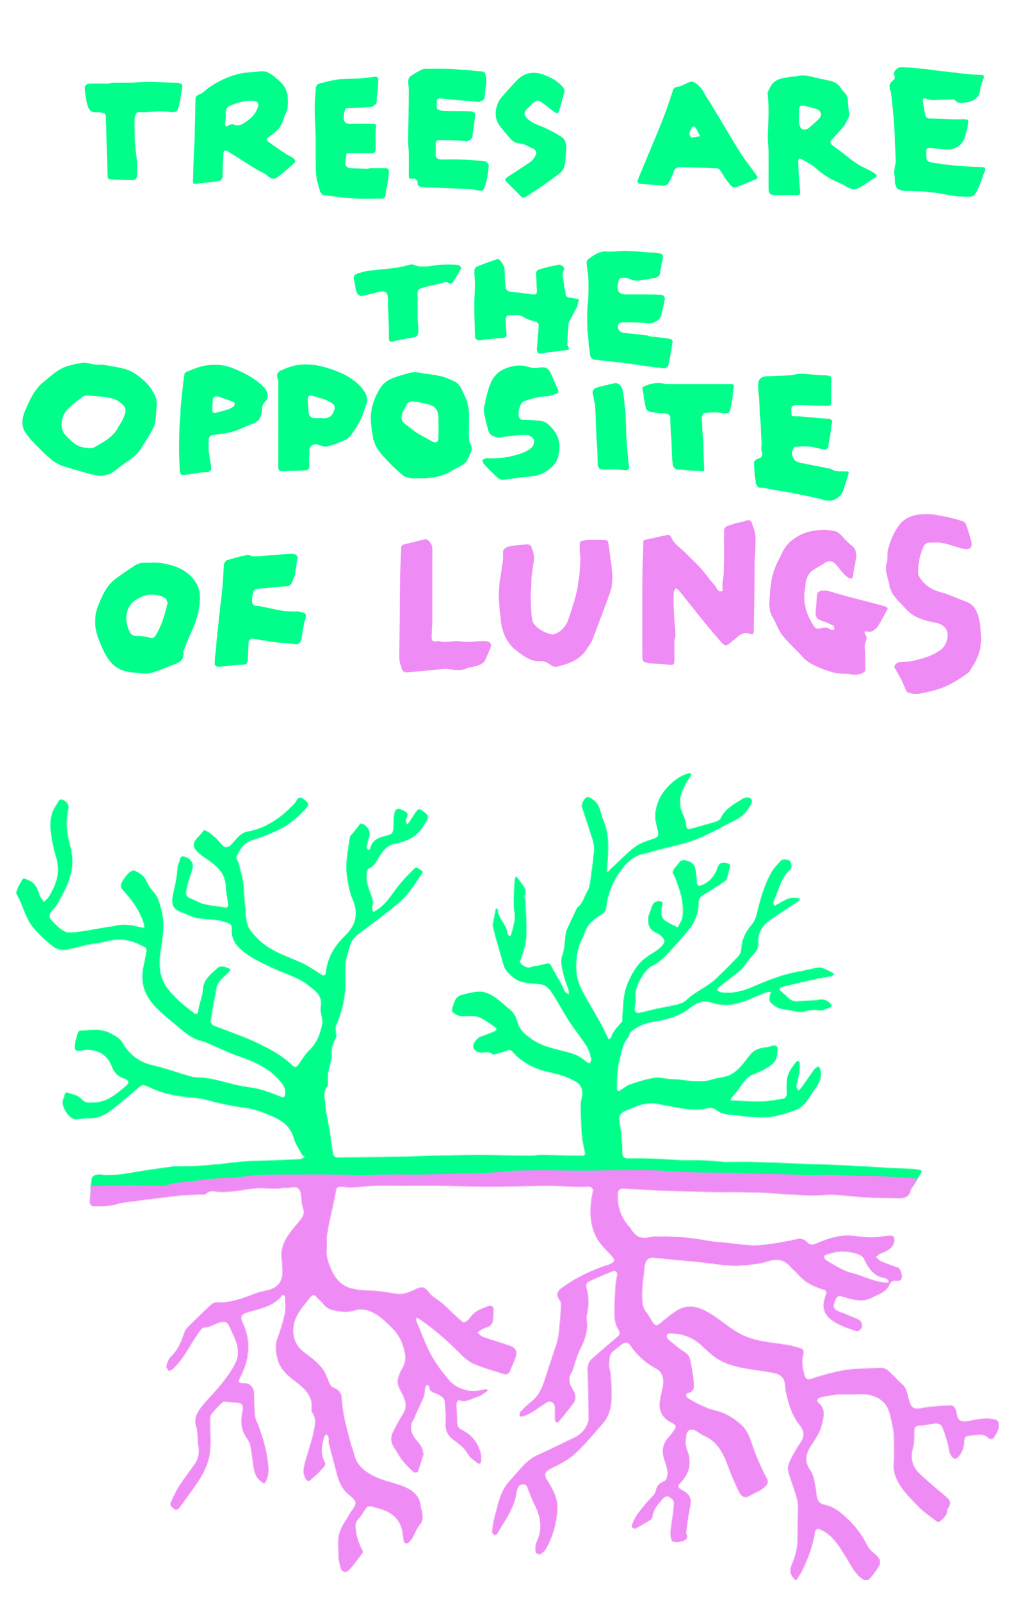 trees-lungs_colour.jpg